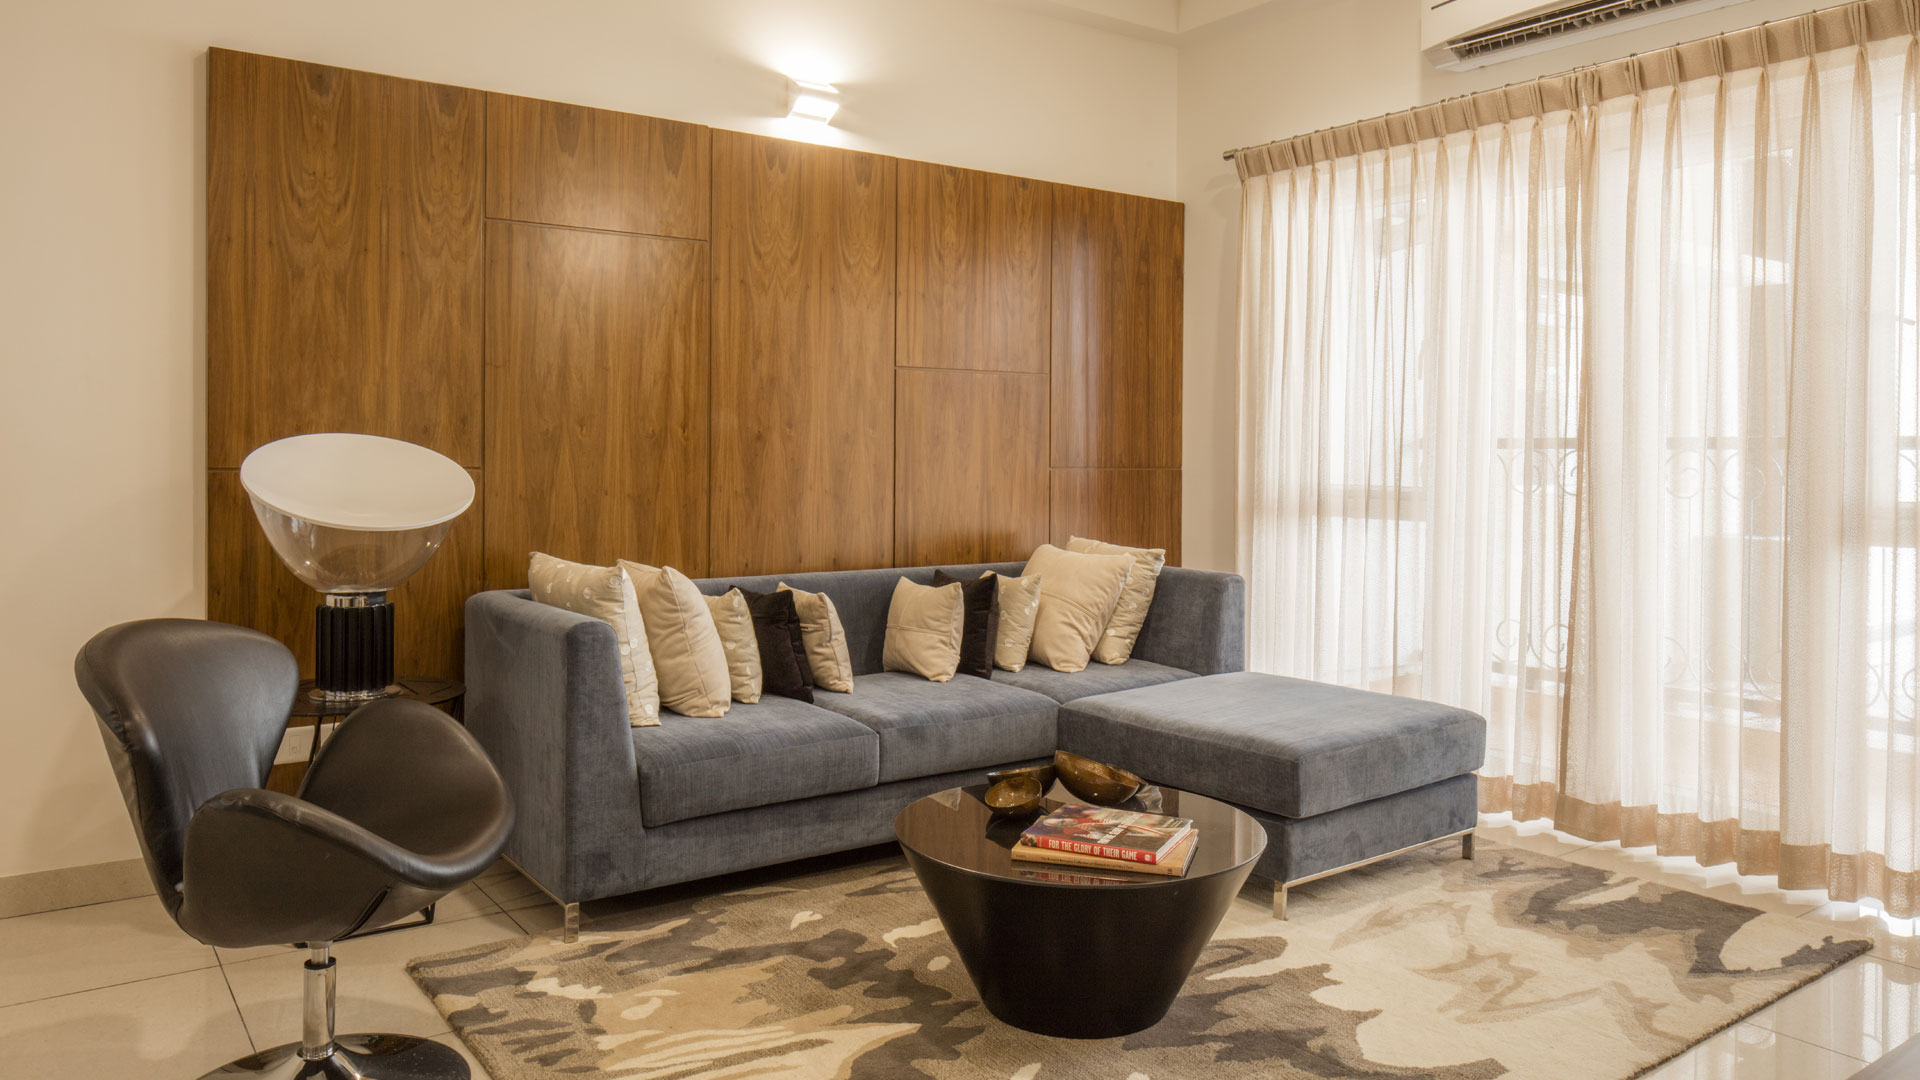 prestige-song-of-the-south-Apartment-in-yelenahalli-Bangalore-Image-06